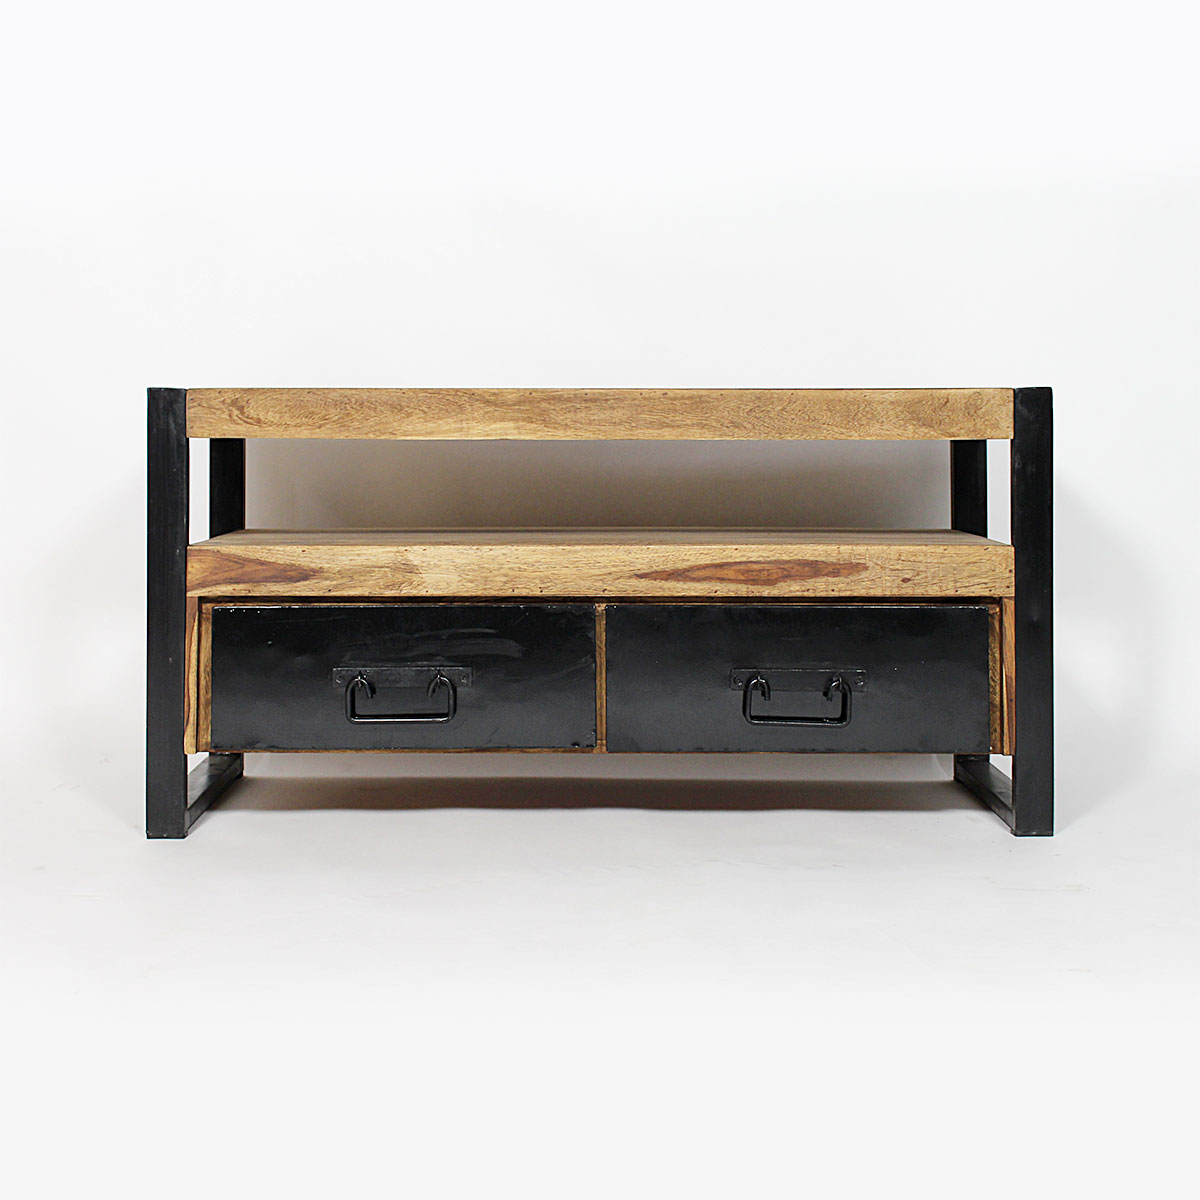 meuble tv industriel 2 tiroirs bois fonc made in meubles. Black Bedroom Furniture Sets. Home Design Ideas